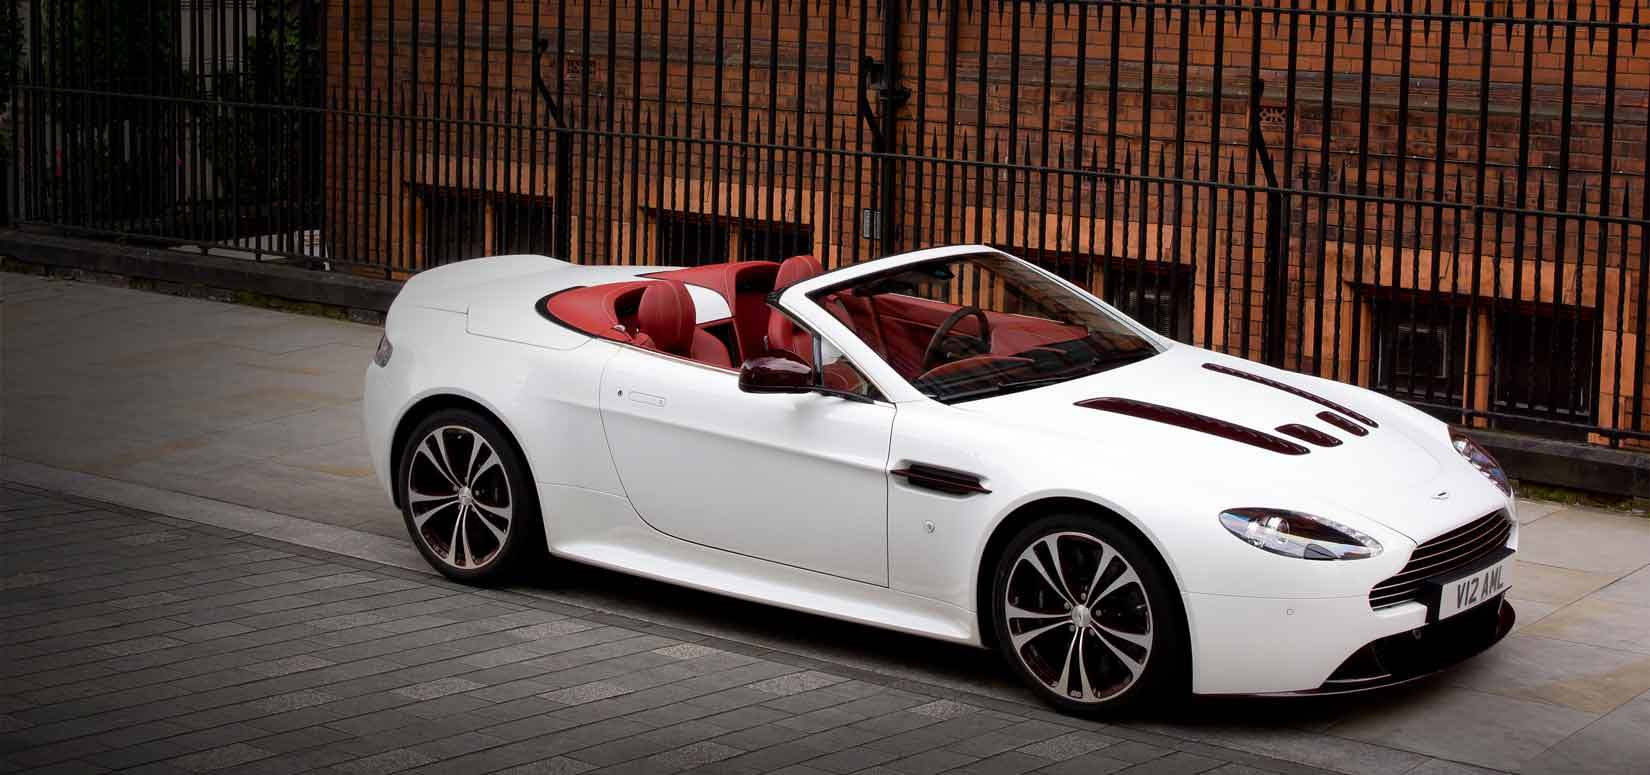 la nouvelle aston martin v12 vantage roadster officialis e. Black Bedroom Furniture Sets. Home Design Ideas